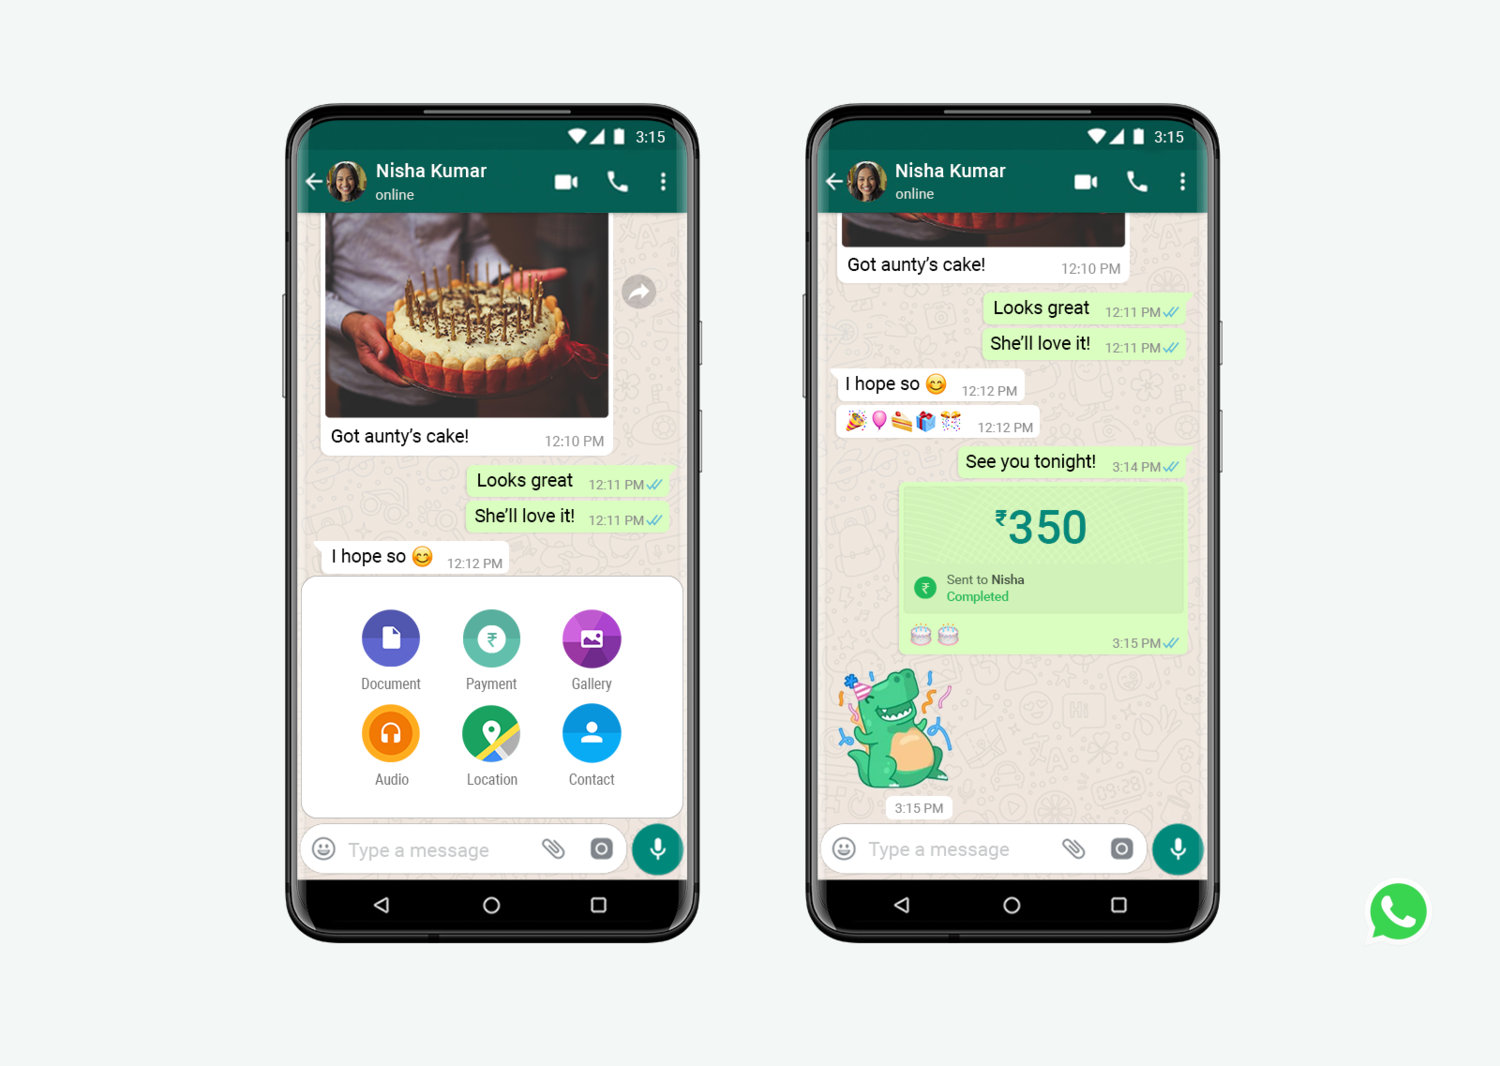 Download latest WhatsApp payment APK